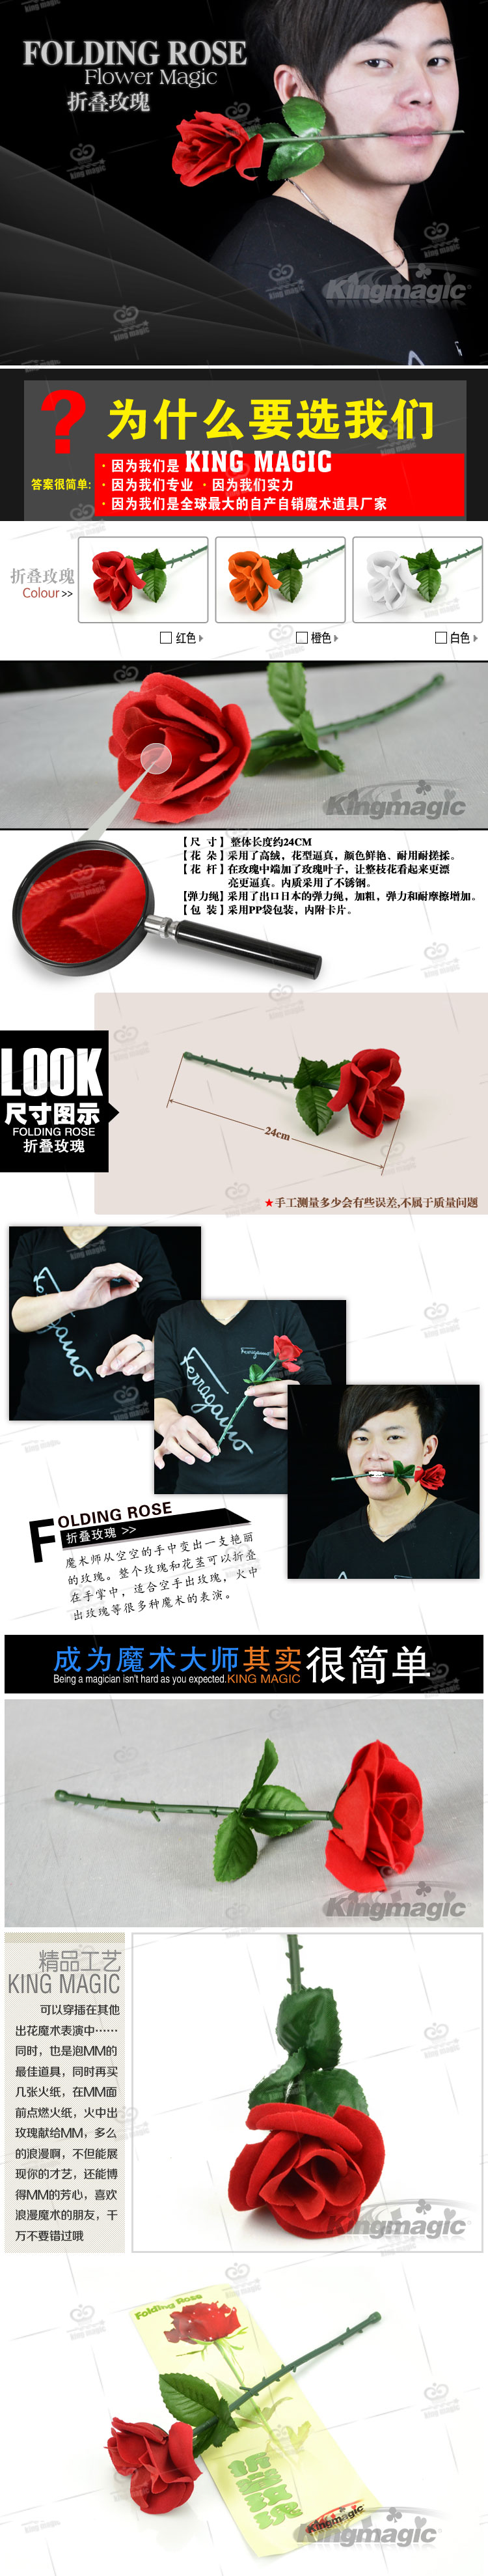 Folding Rose Kingmagic